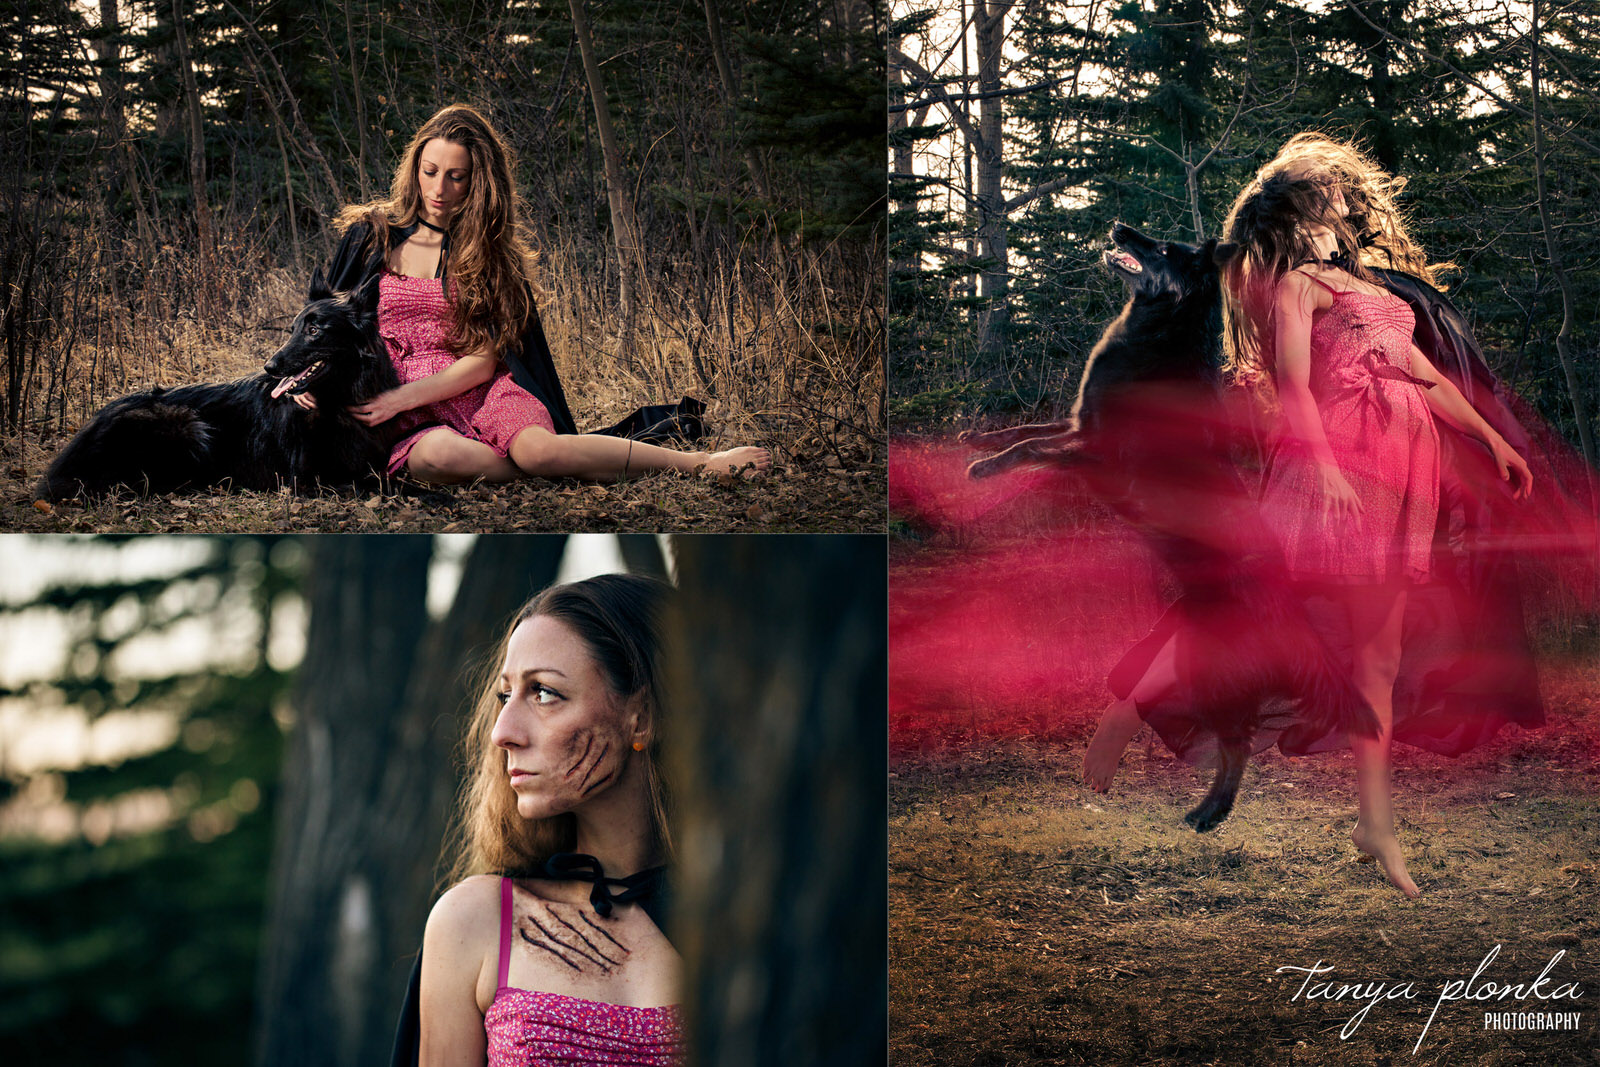 triptych of woman in red dress posing with black Belgian shepherd, floating in air with dog, and standing behind tree with scratch mark special effects makeup